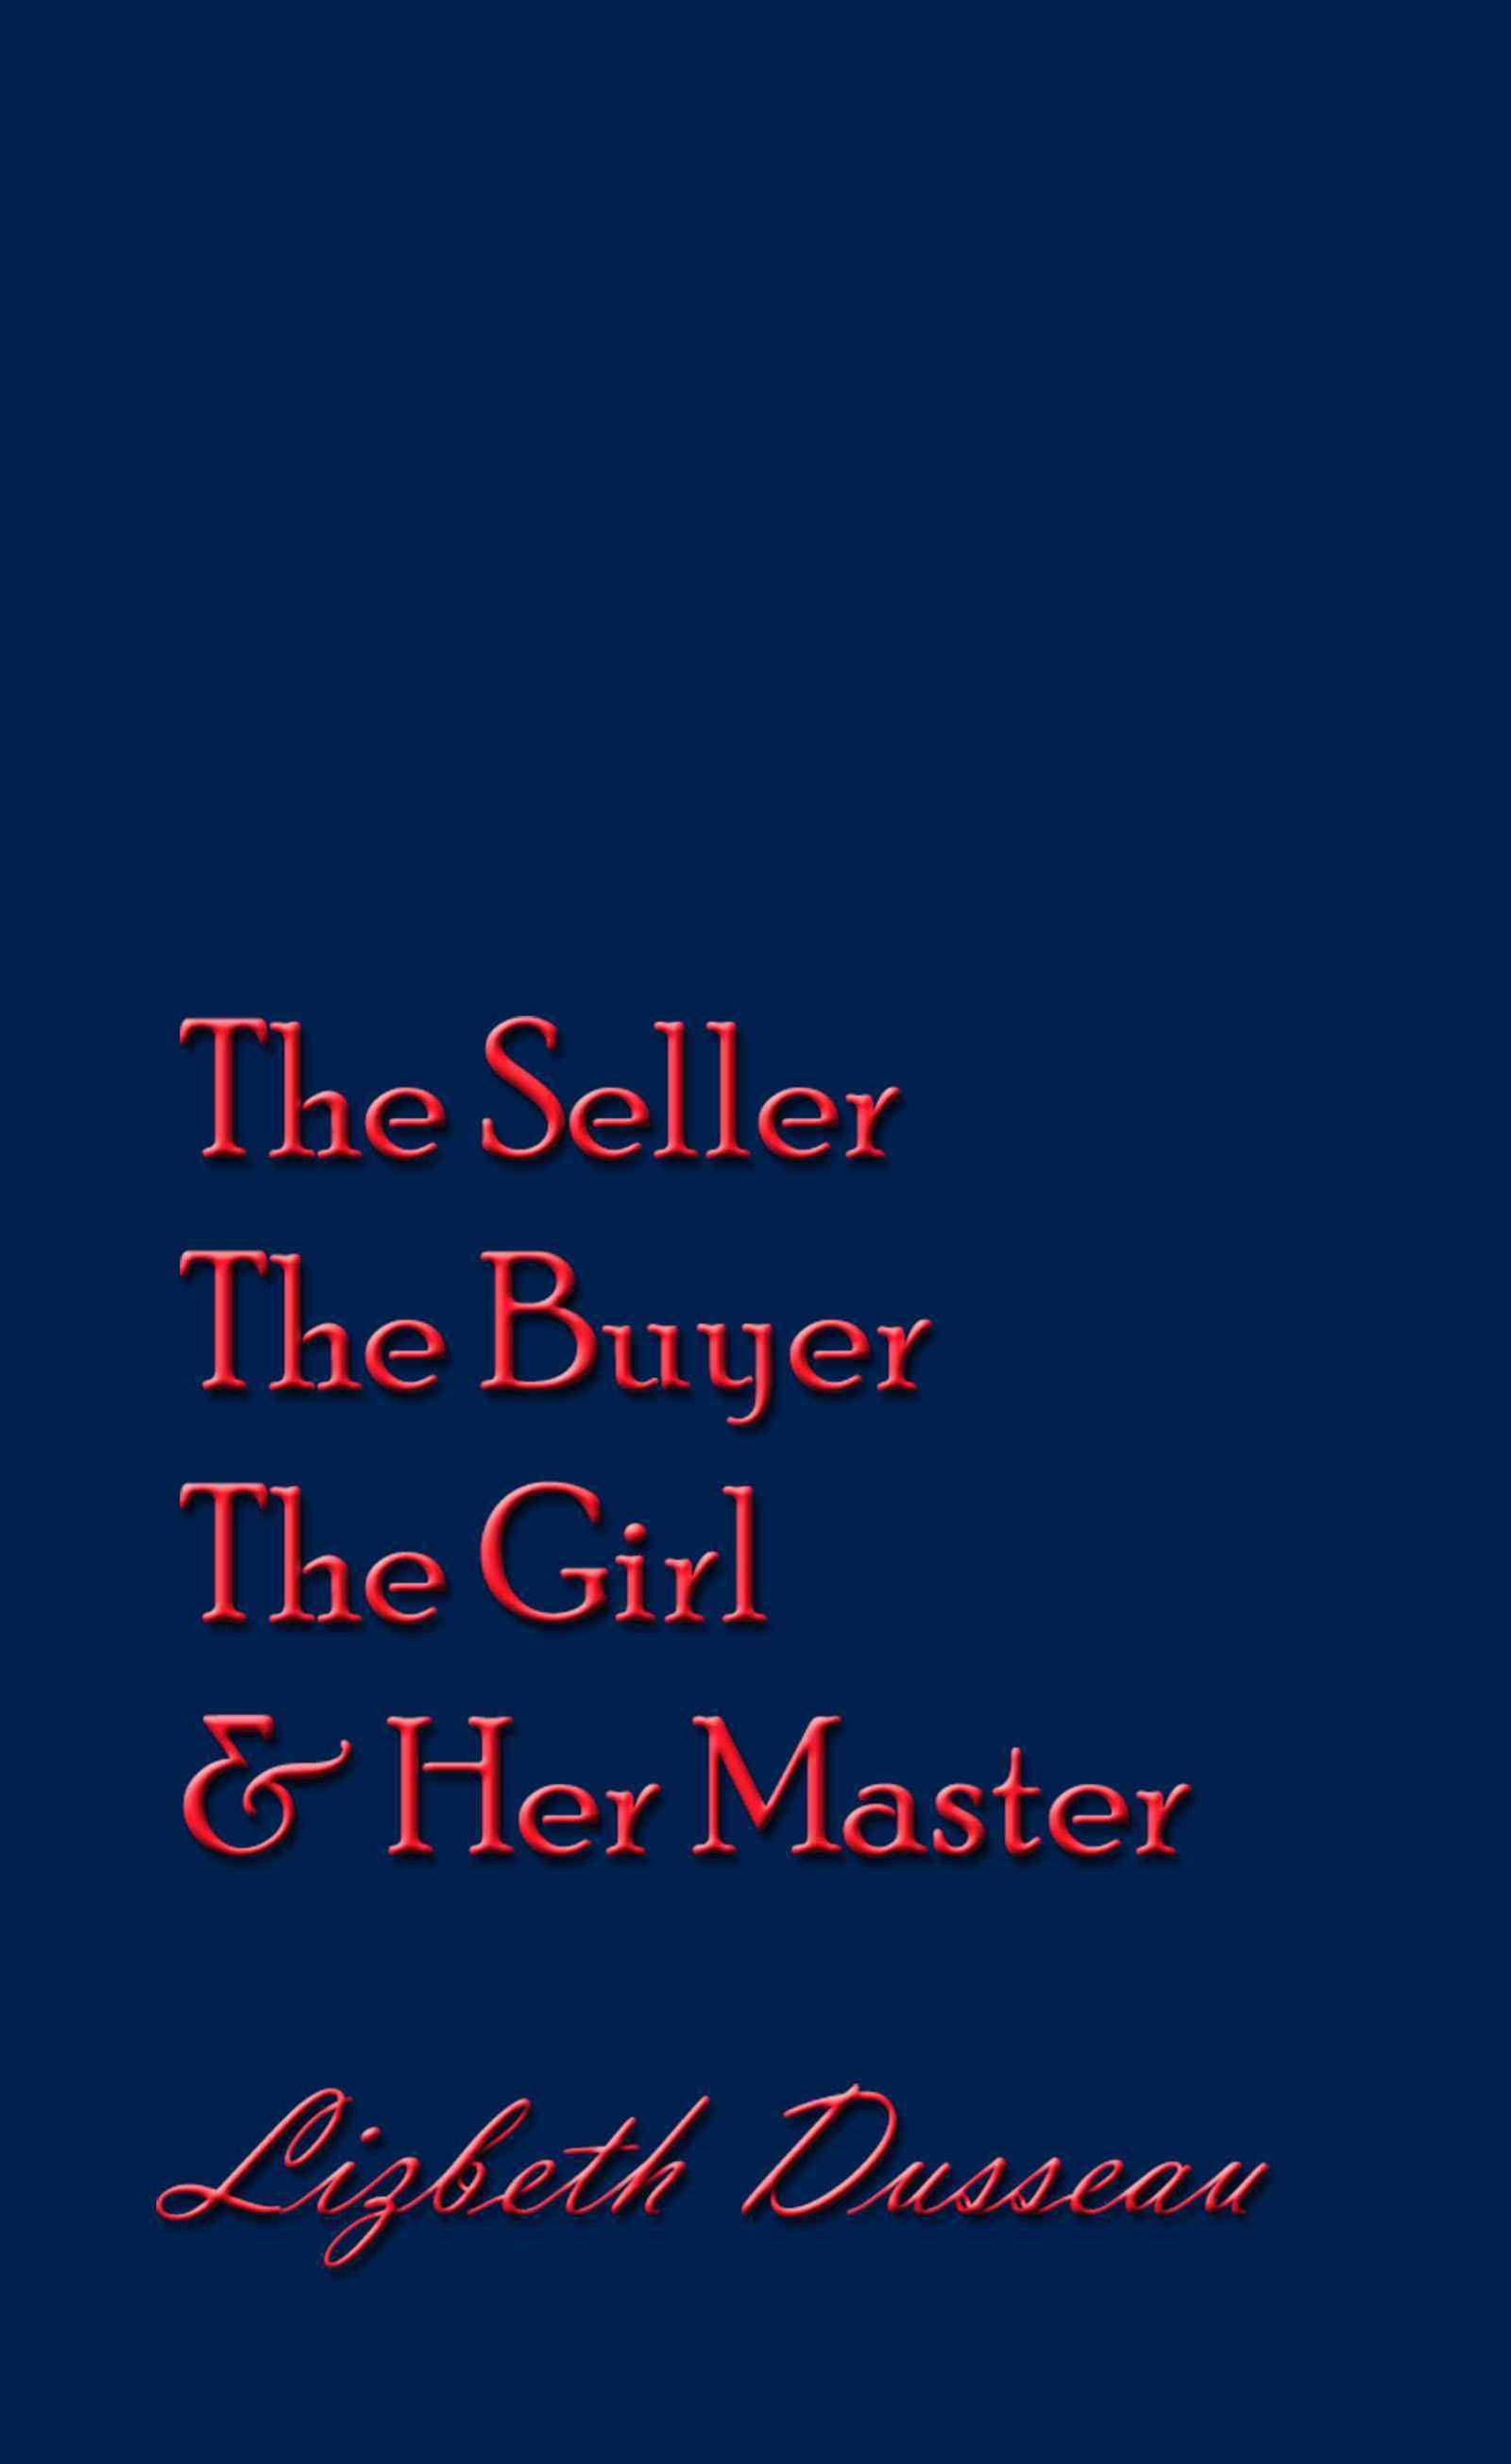 The Seller, The Buyer, The Girl & Her Master